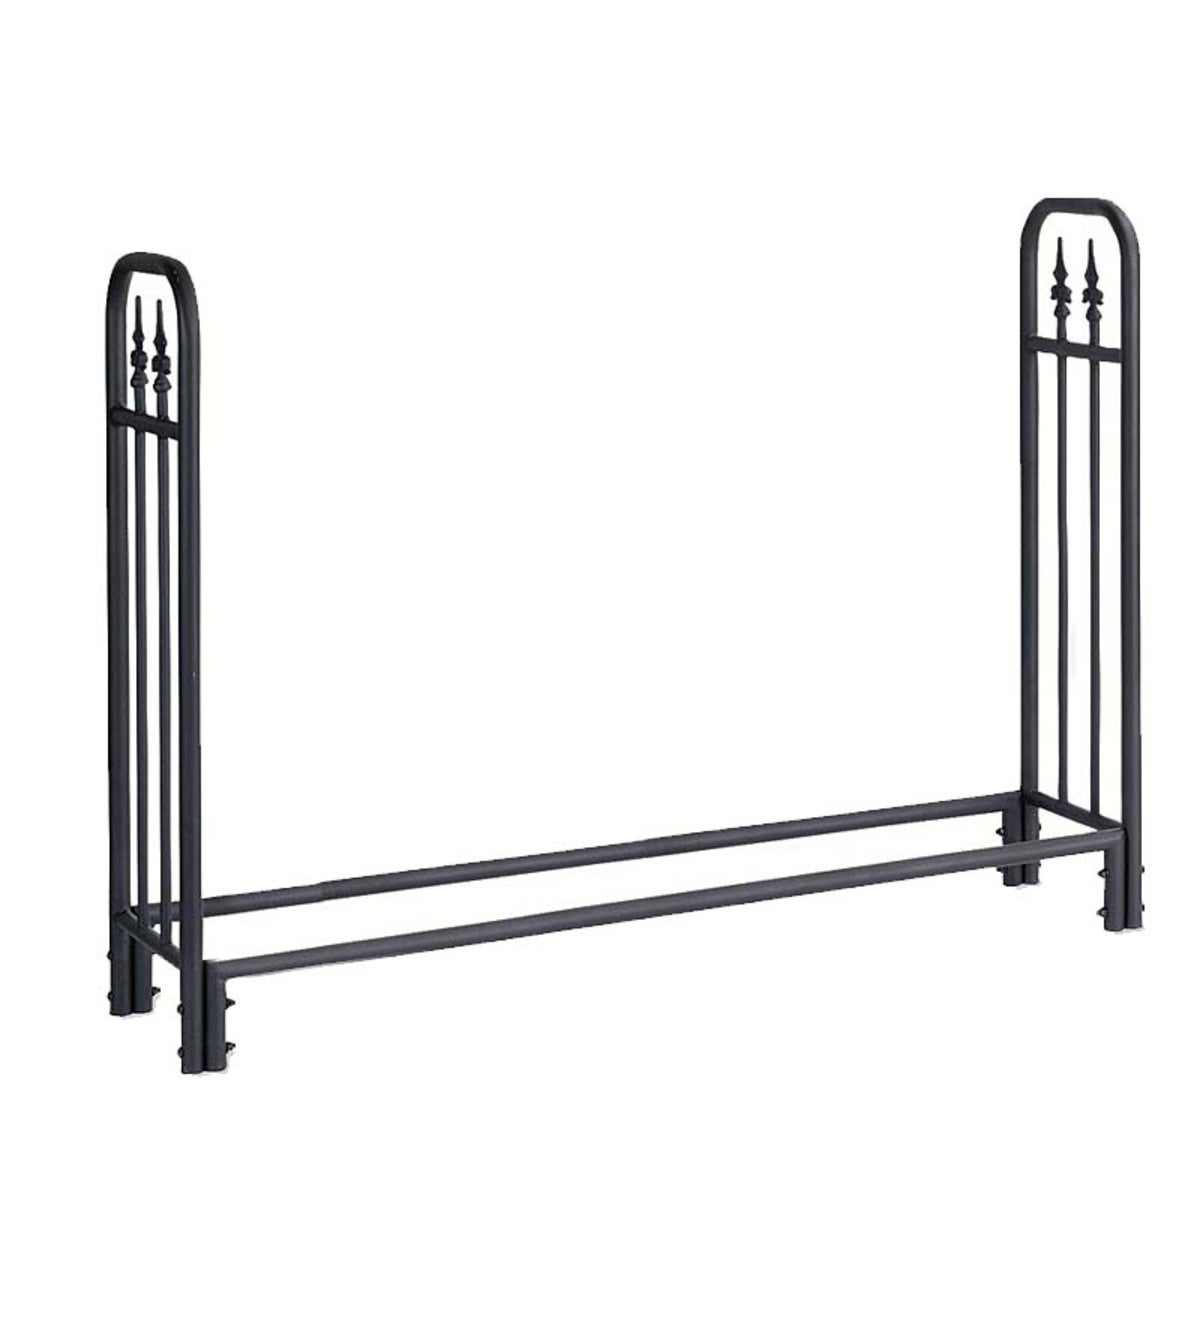 Large Heavy Duty Steel Wood Rack with Finial Design